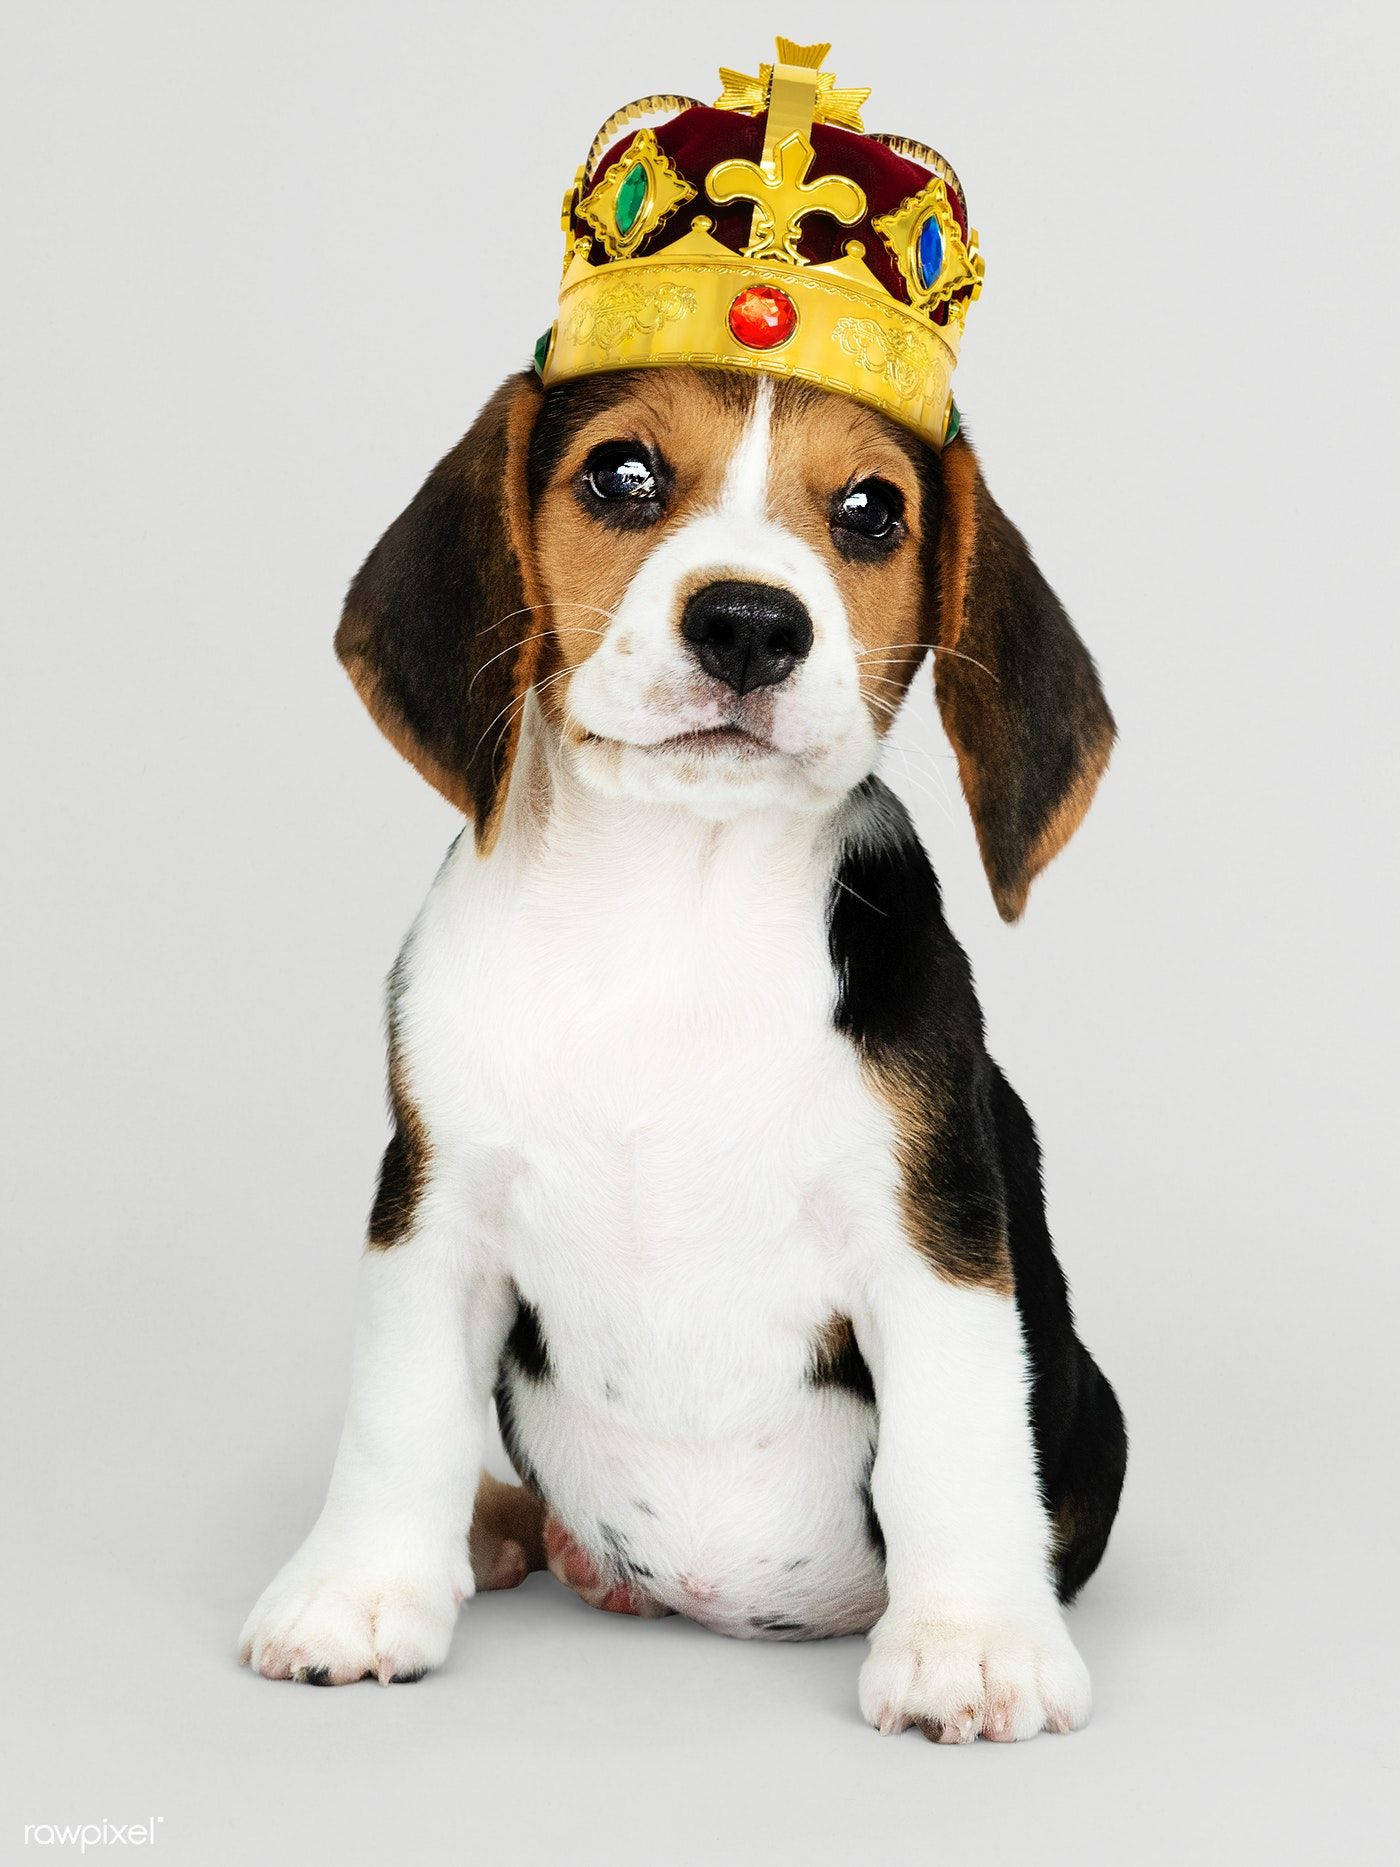 Free Week Of Dogtv On Directv Beagle Puppy Begal Puppies Cute